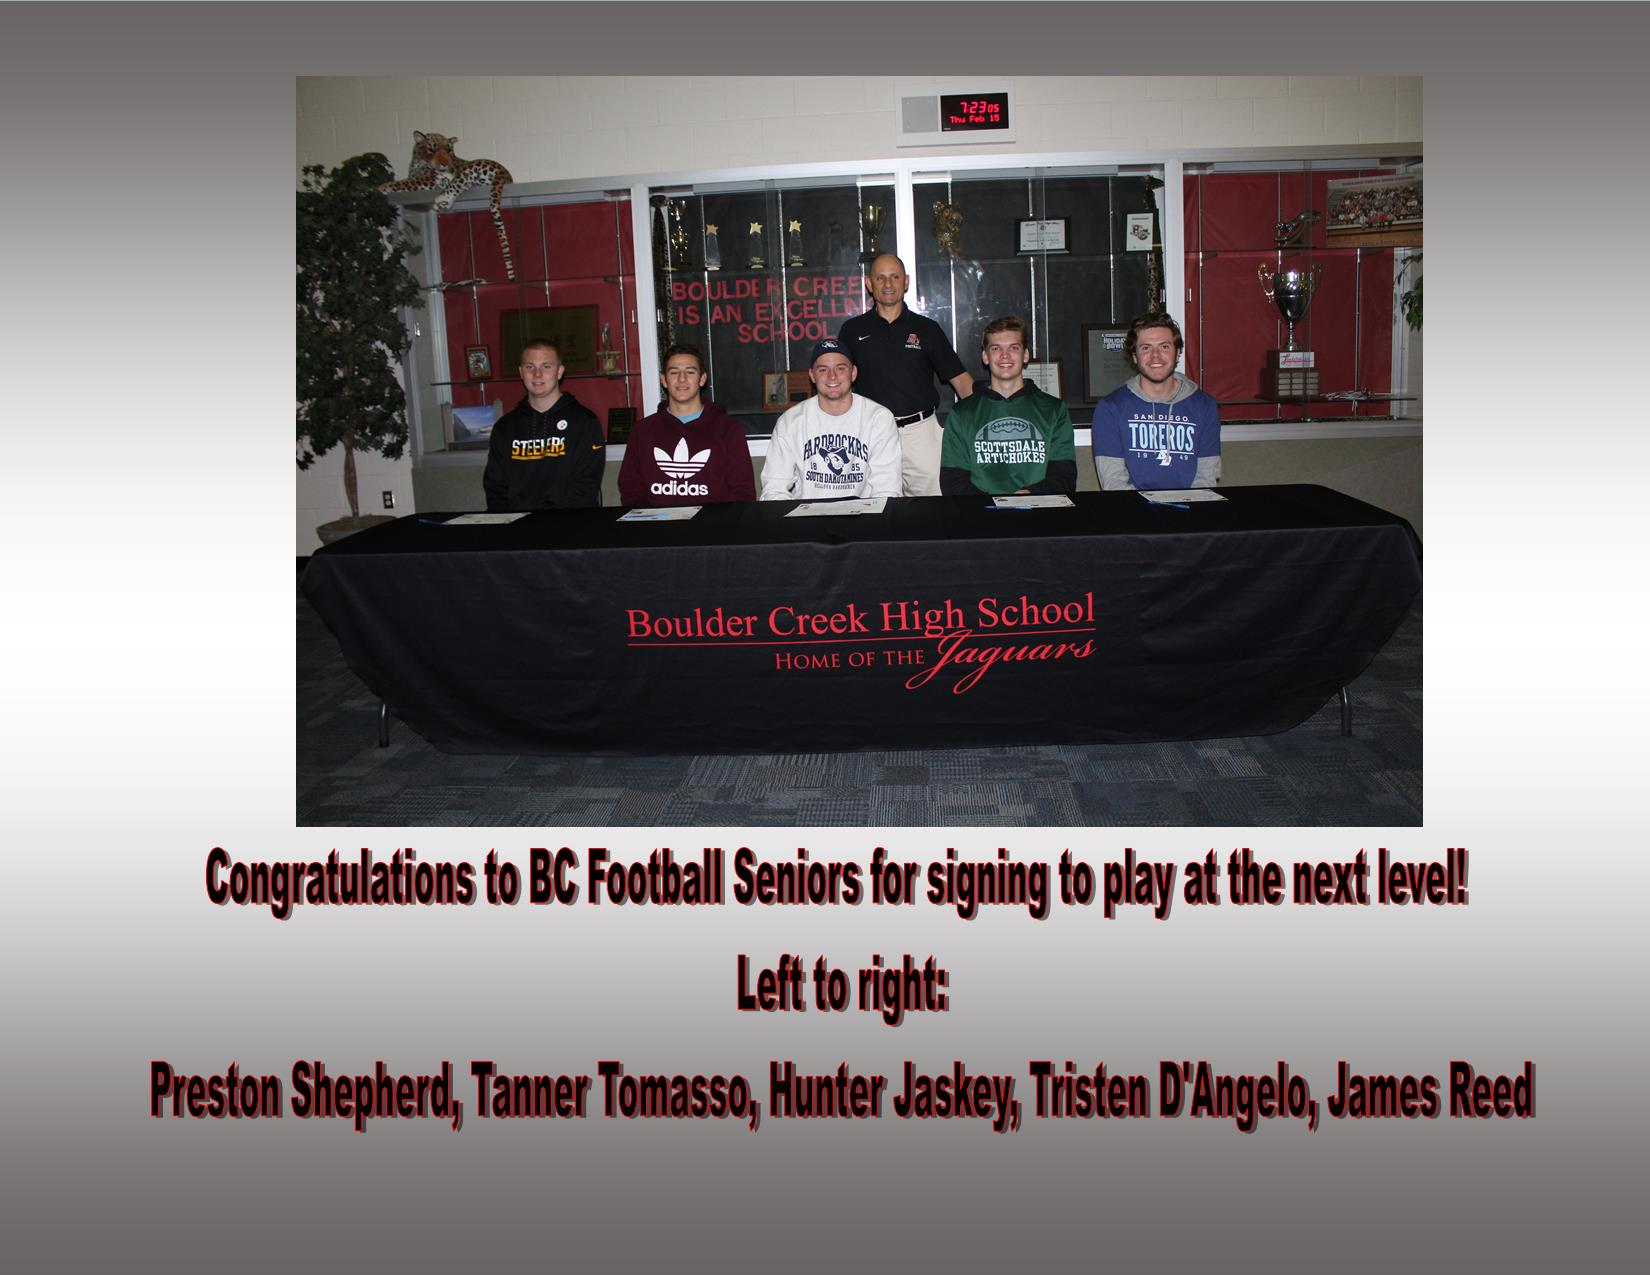 Congratulations to our Senior Football Athletes, playing at the next level!